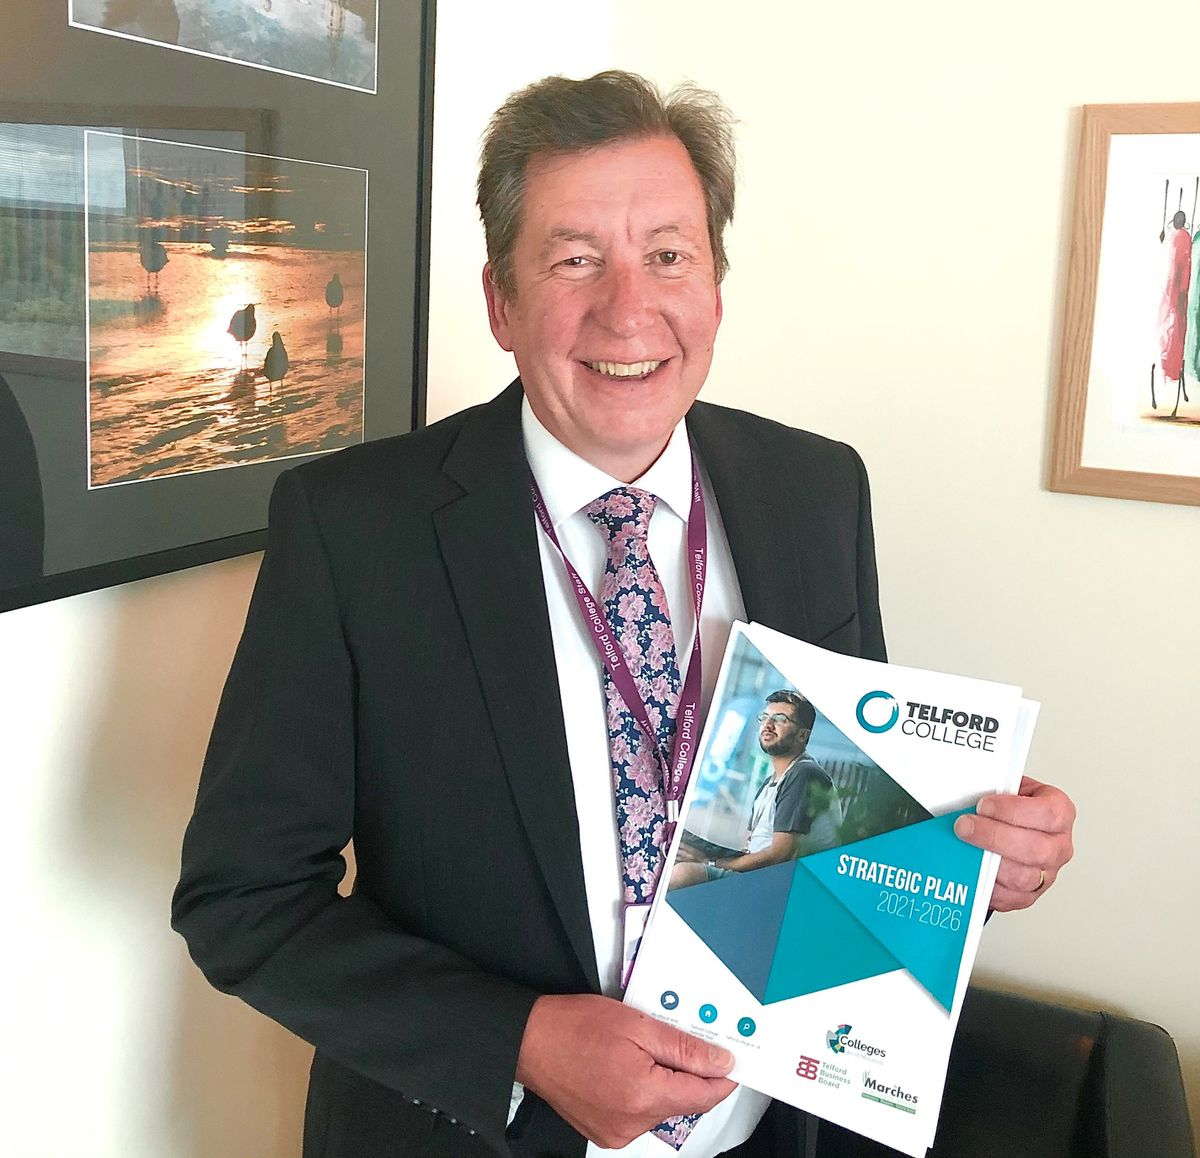 Telford College principall Graham Guest with the new strategic plan